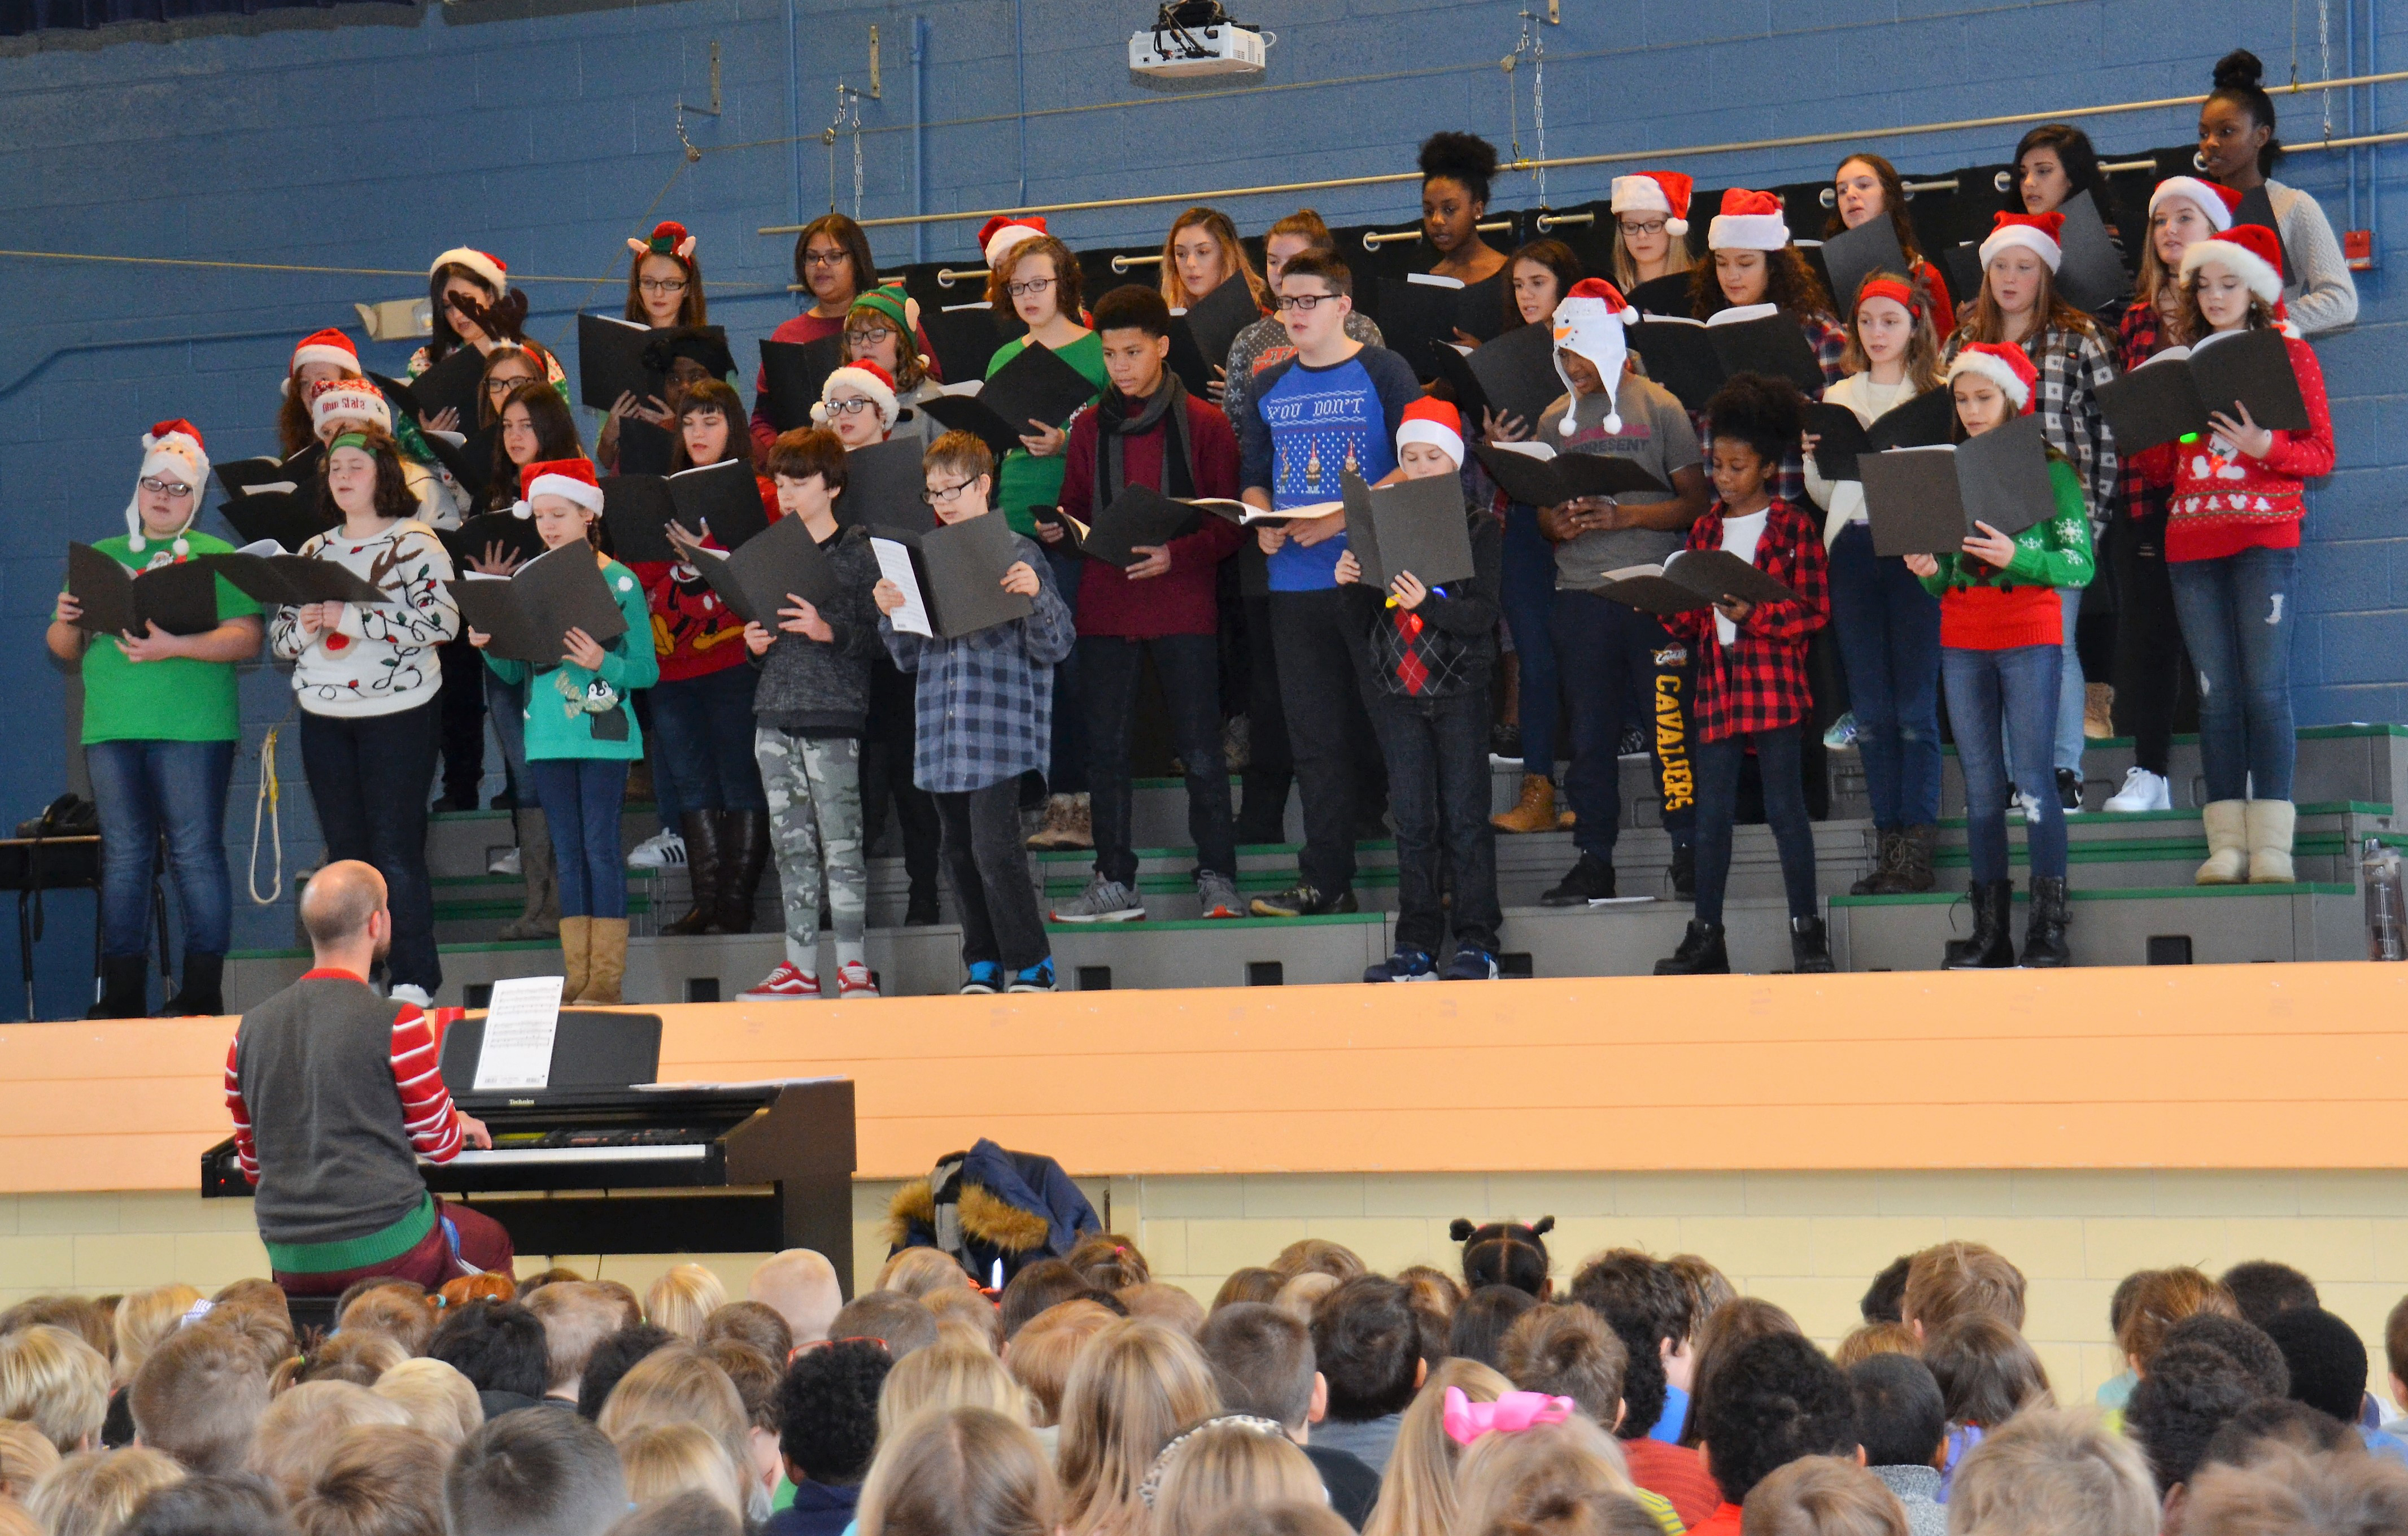 Blendon Students Serenade Whittier Students